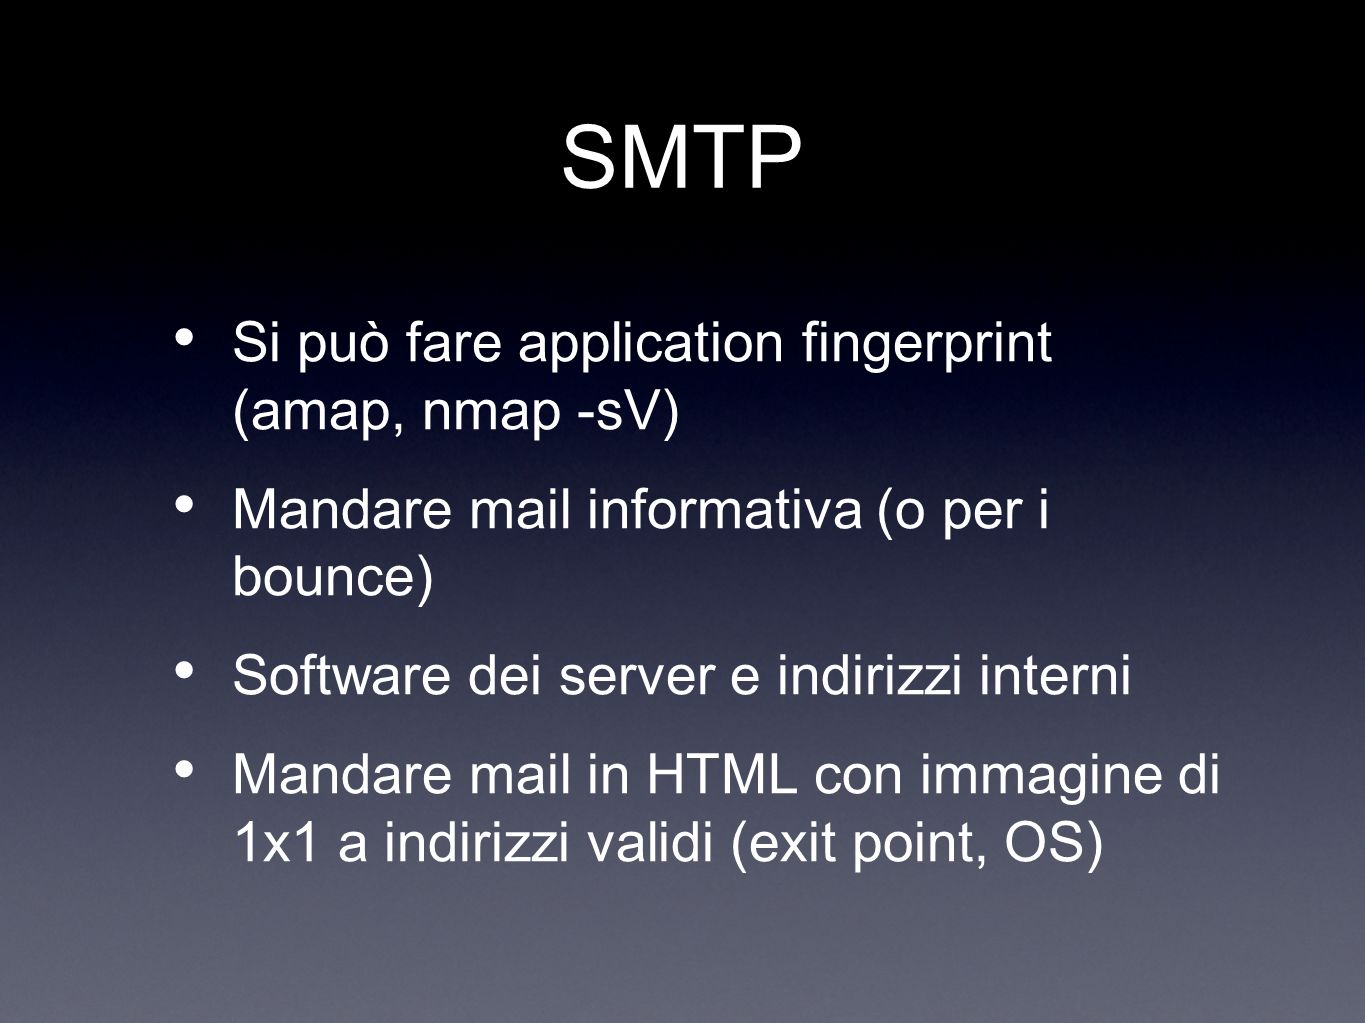 SMTP Si può fare application fingerprint (amap, nmap -sV)